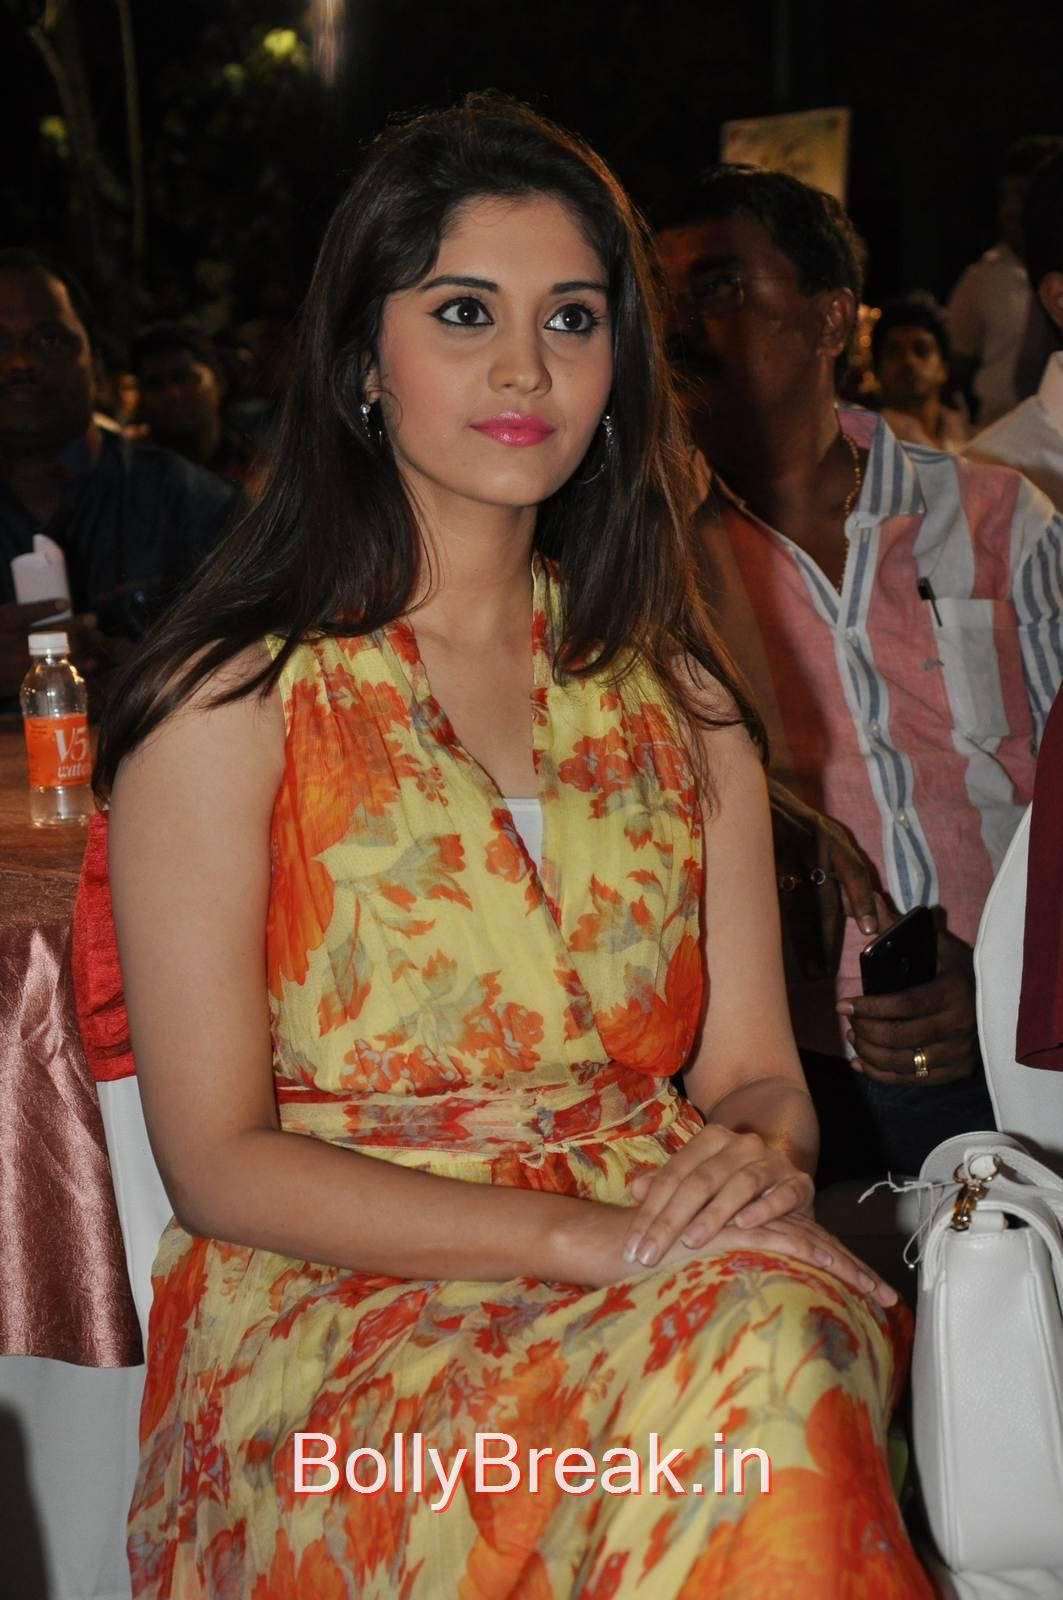 Surabhi Photos, Actress Surabhi Hot Photo gallery from an event